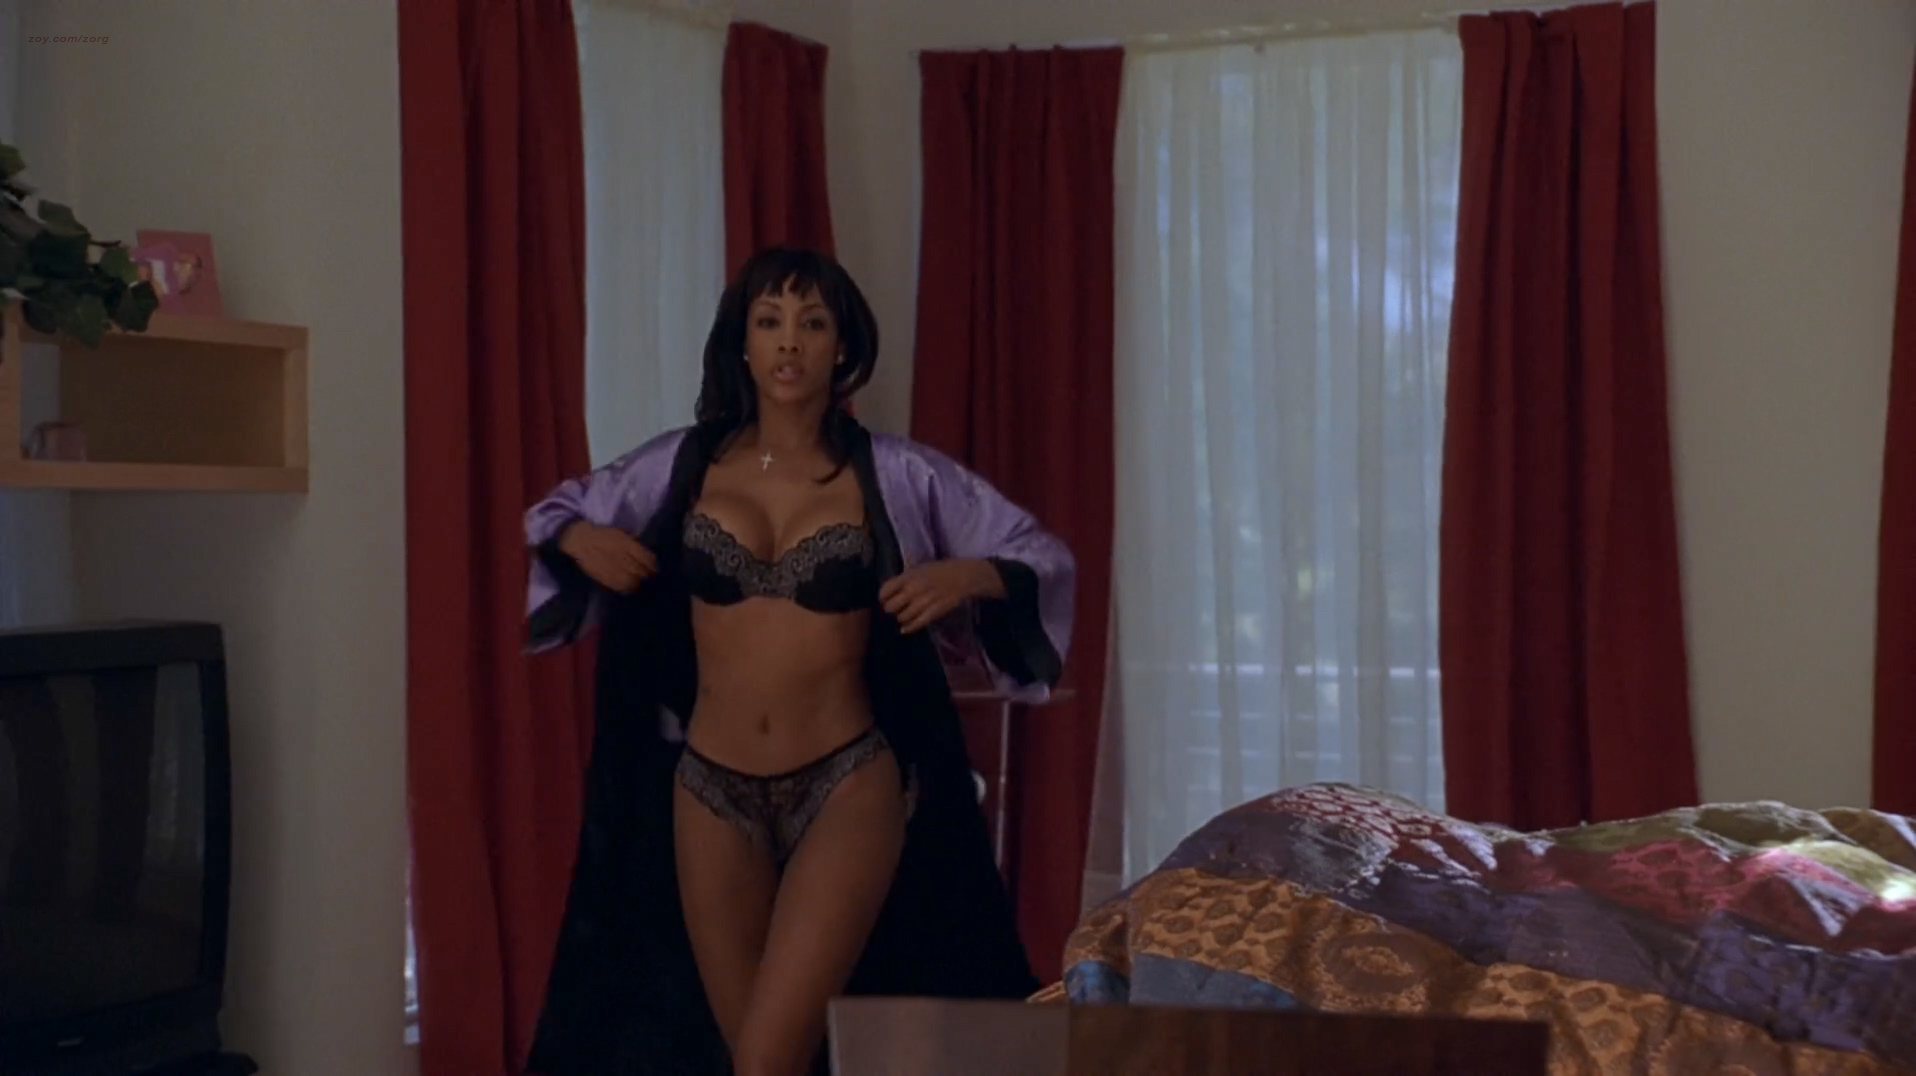 Vivica A. Fox hot in lingerie and Carmen Electra hot panties - Getting Played (2006) hd1080p Web-DL (9)